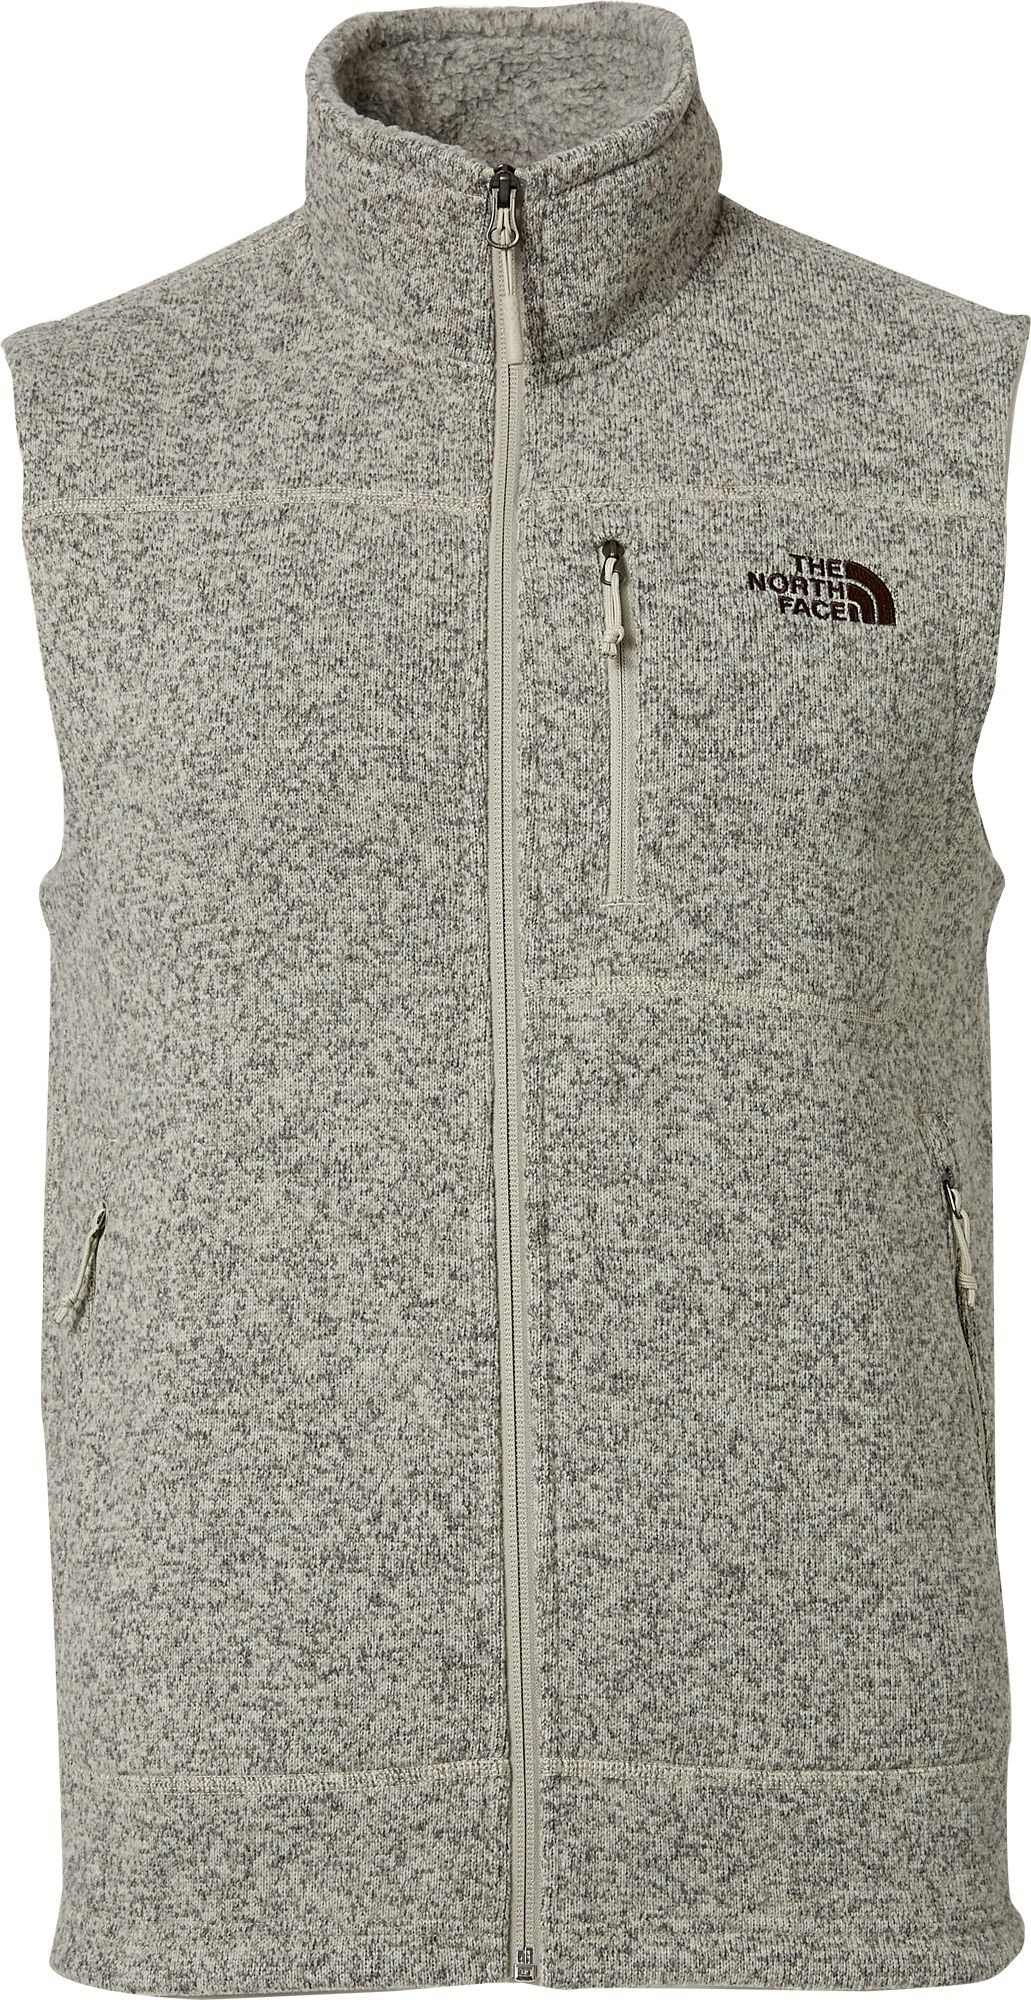 The North Face Men's Gordon Lyons Fleece Vest | DICK'S Sporting Goods